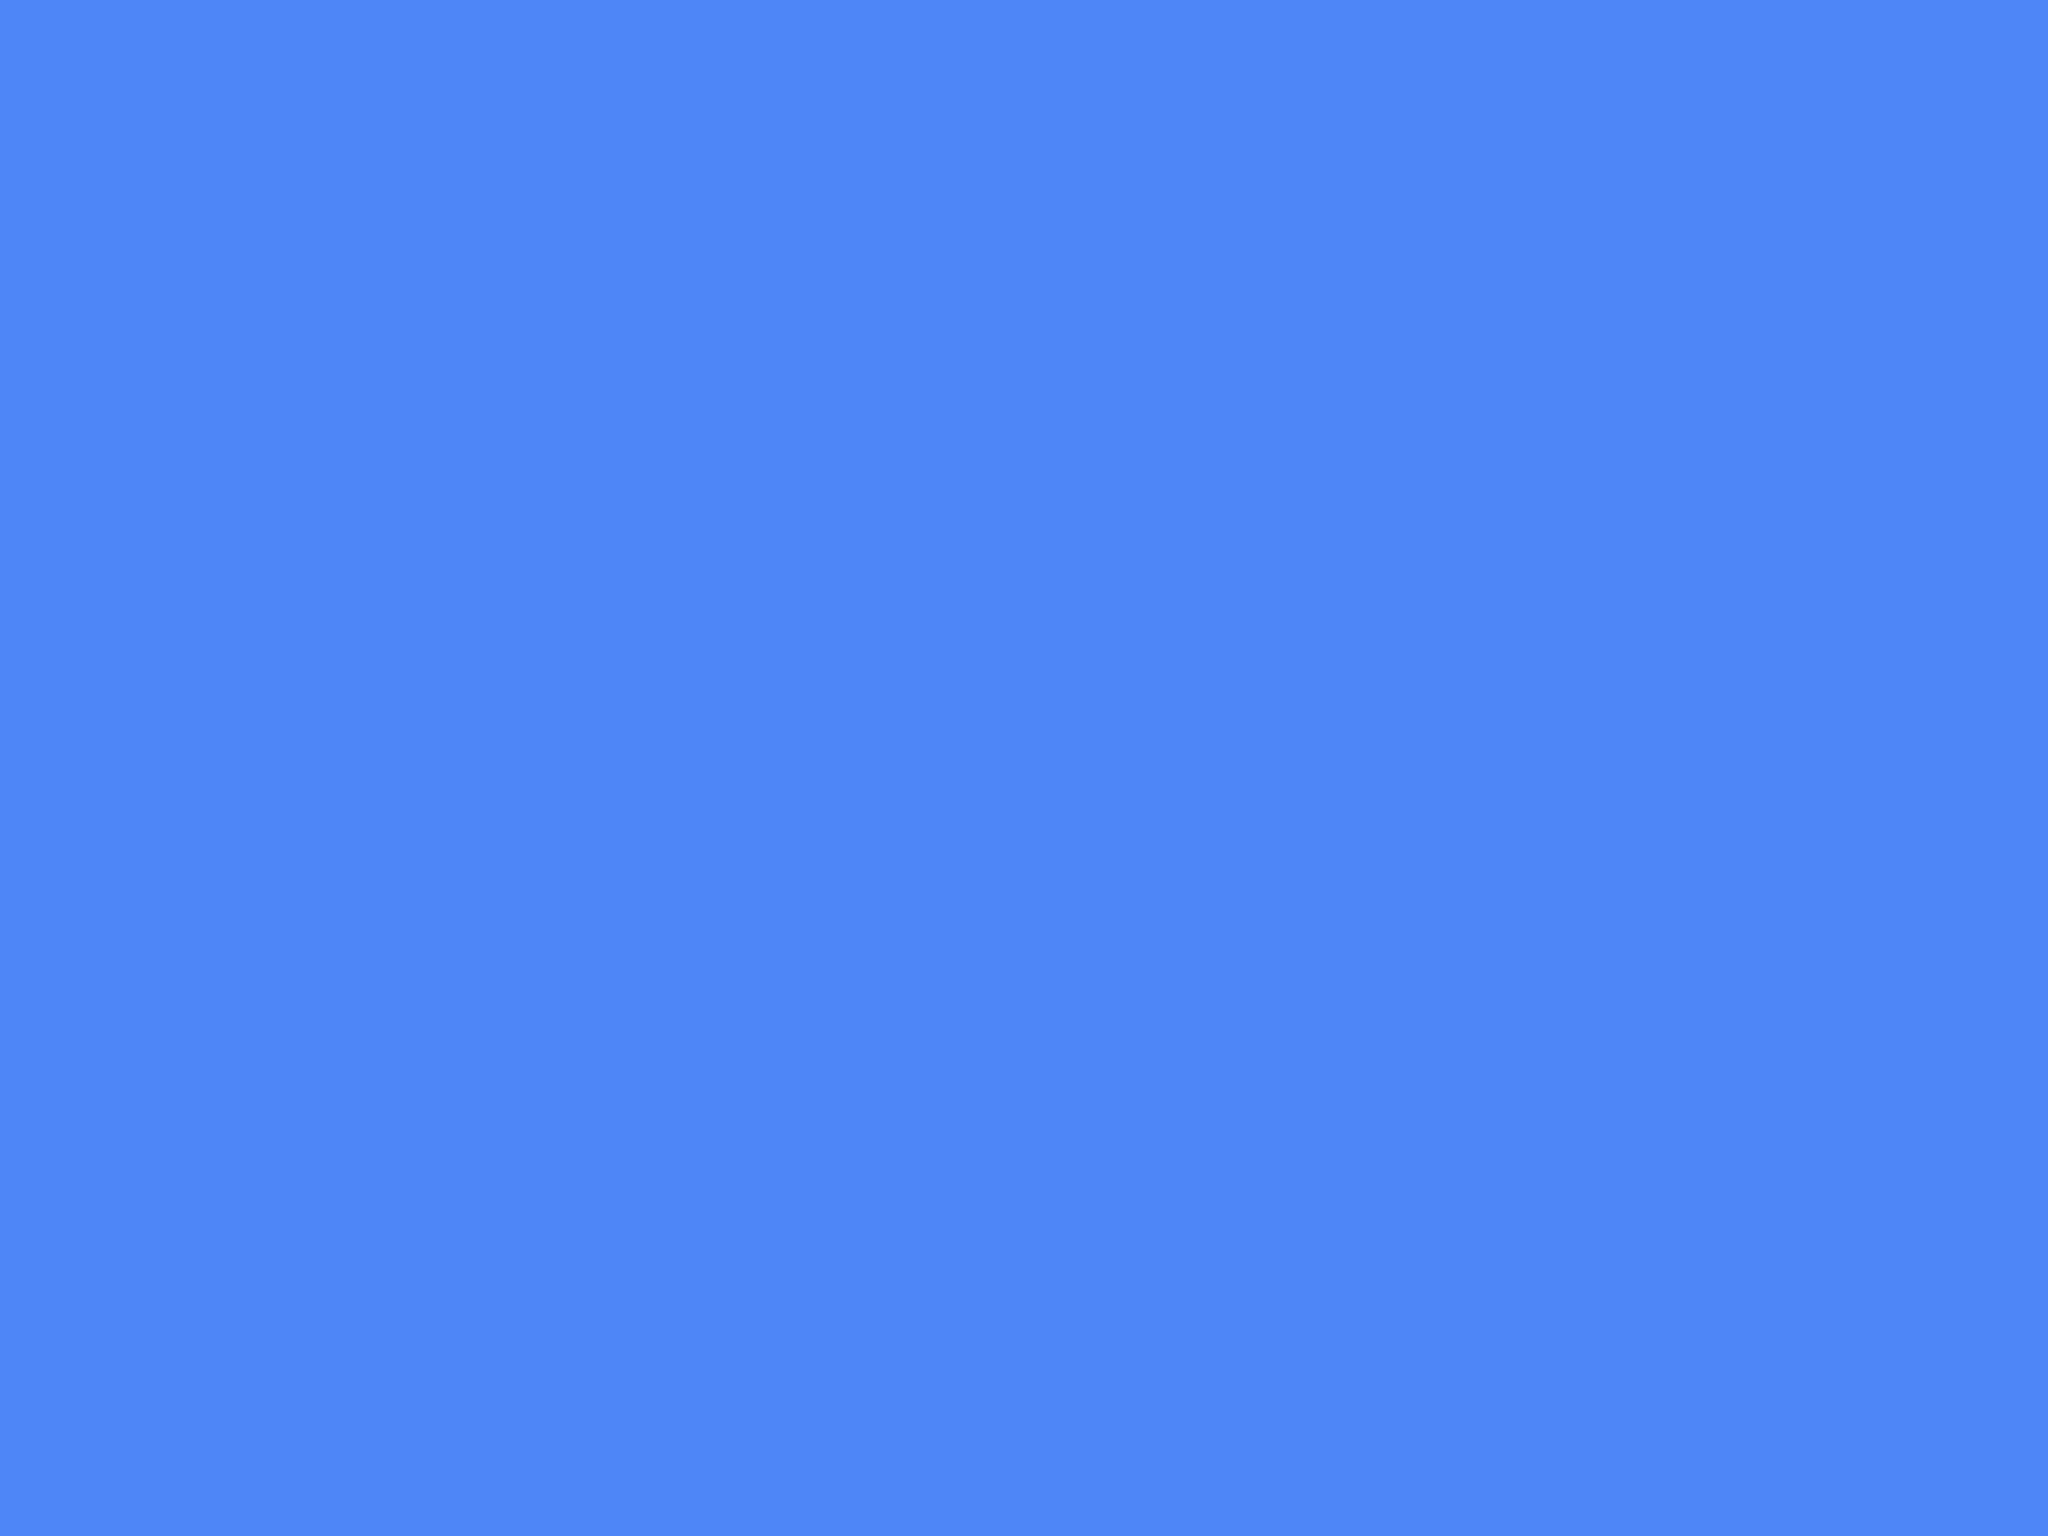 2048x1536 Blueberry Solid Color Background